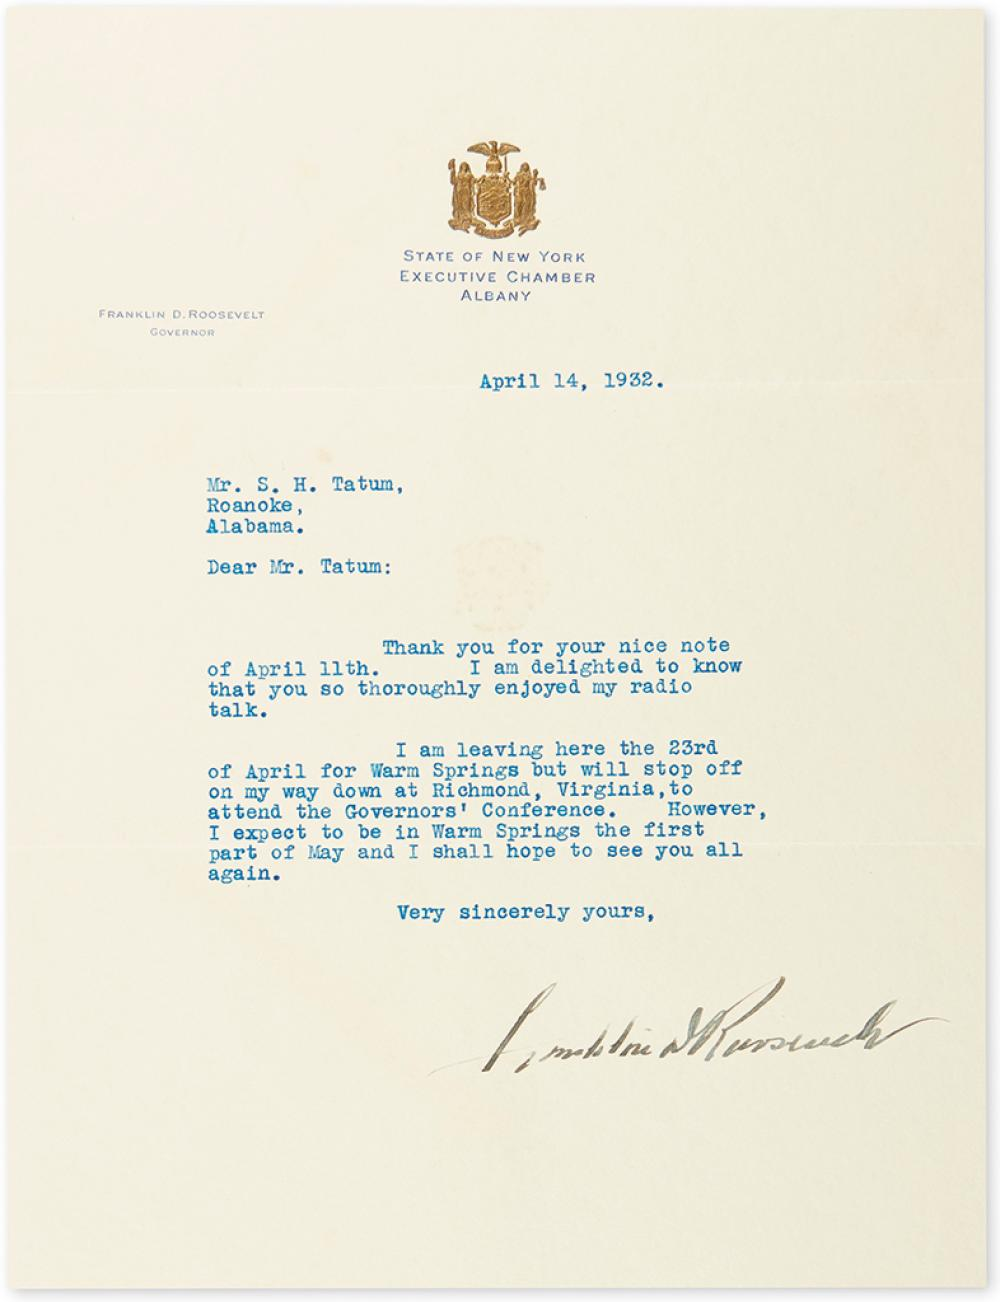 ROOSEVELT, FRANKLIN D. Typed Letter Signed, as Governor, to Samuel H. Tatum,